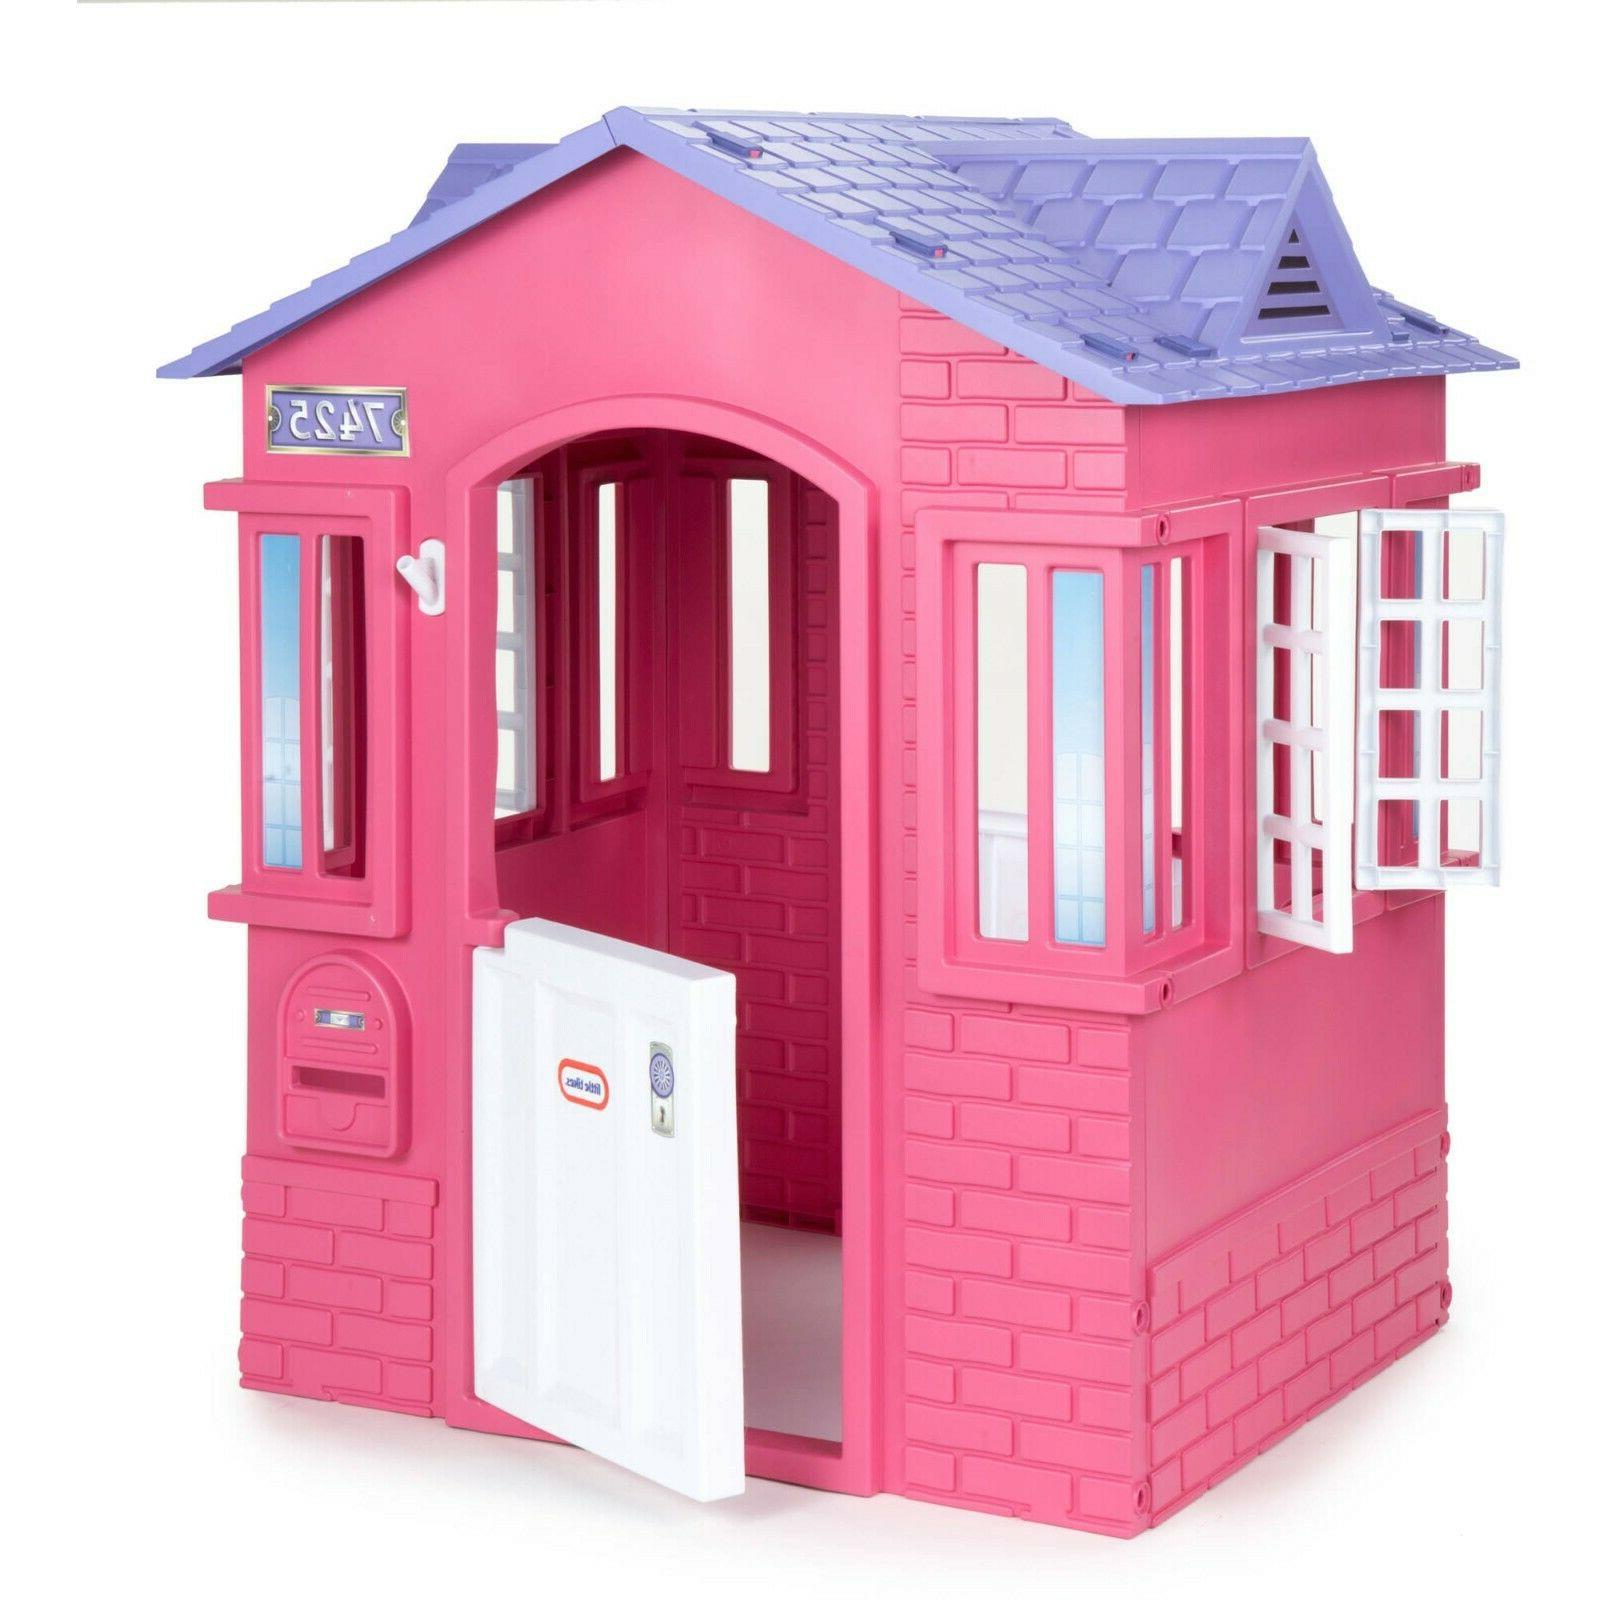 Kids Clubhouse Toddler Imagination Play Girls Indoor Outdoor